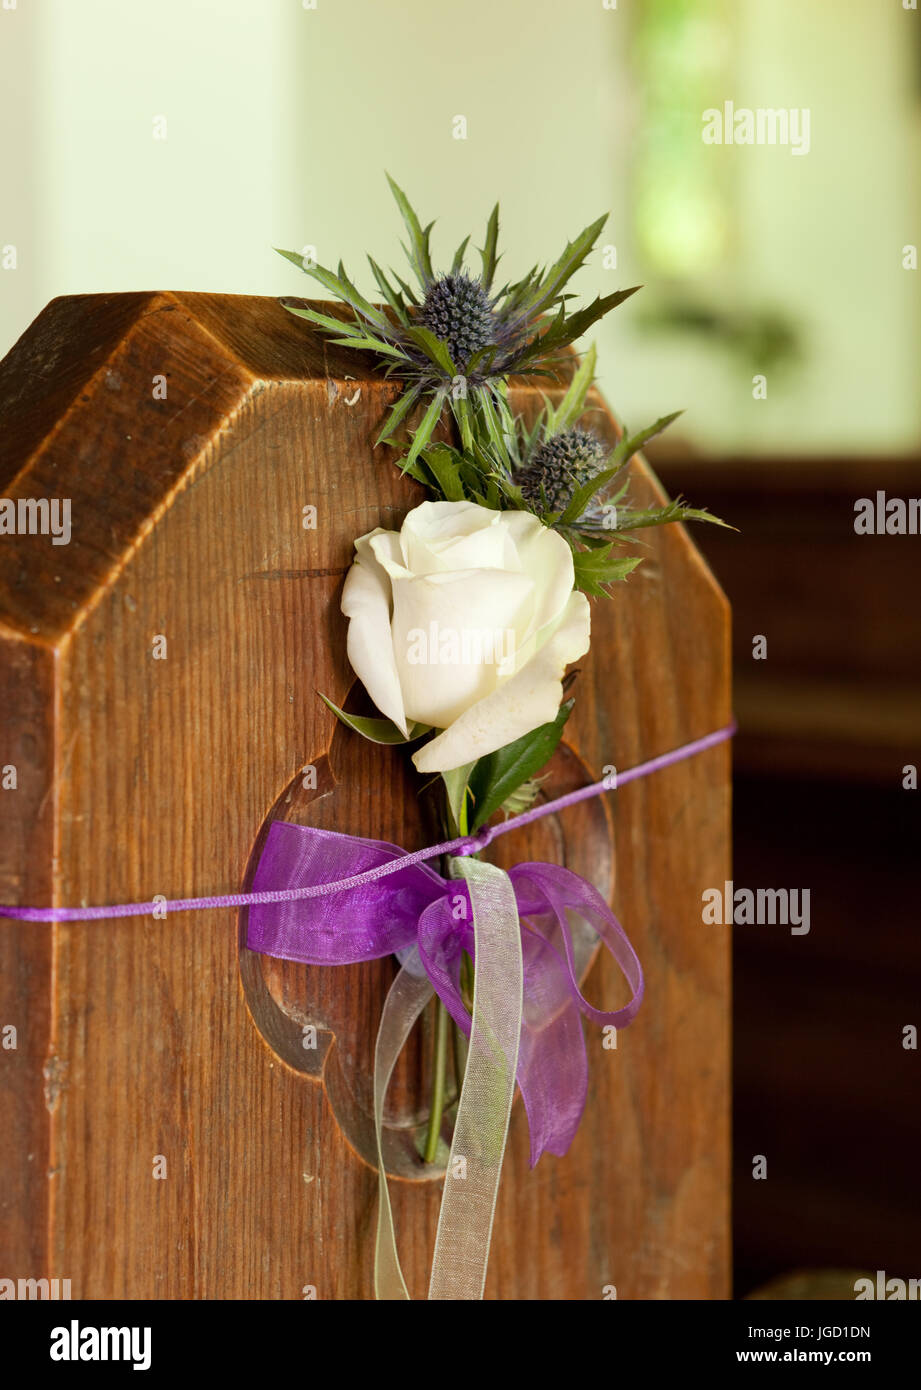 Cream rose with thistle tied to church pew for wedding floral decoration. unsharpened - Stock Image